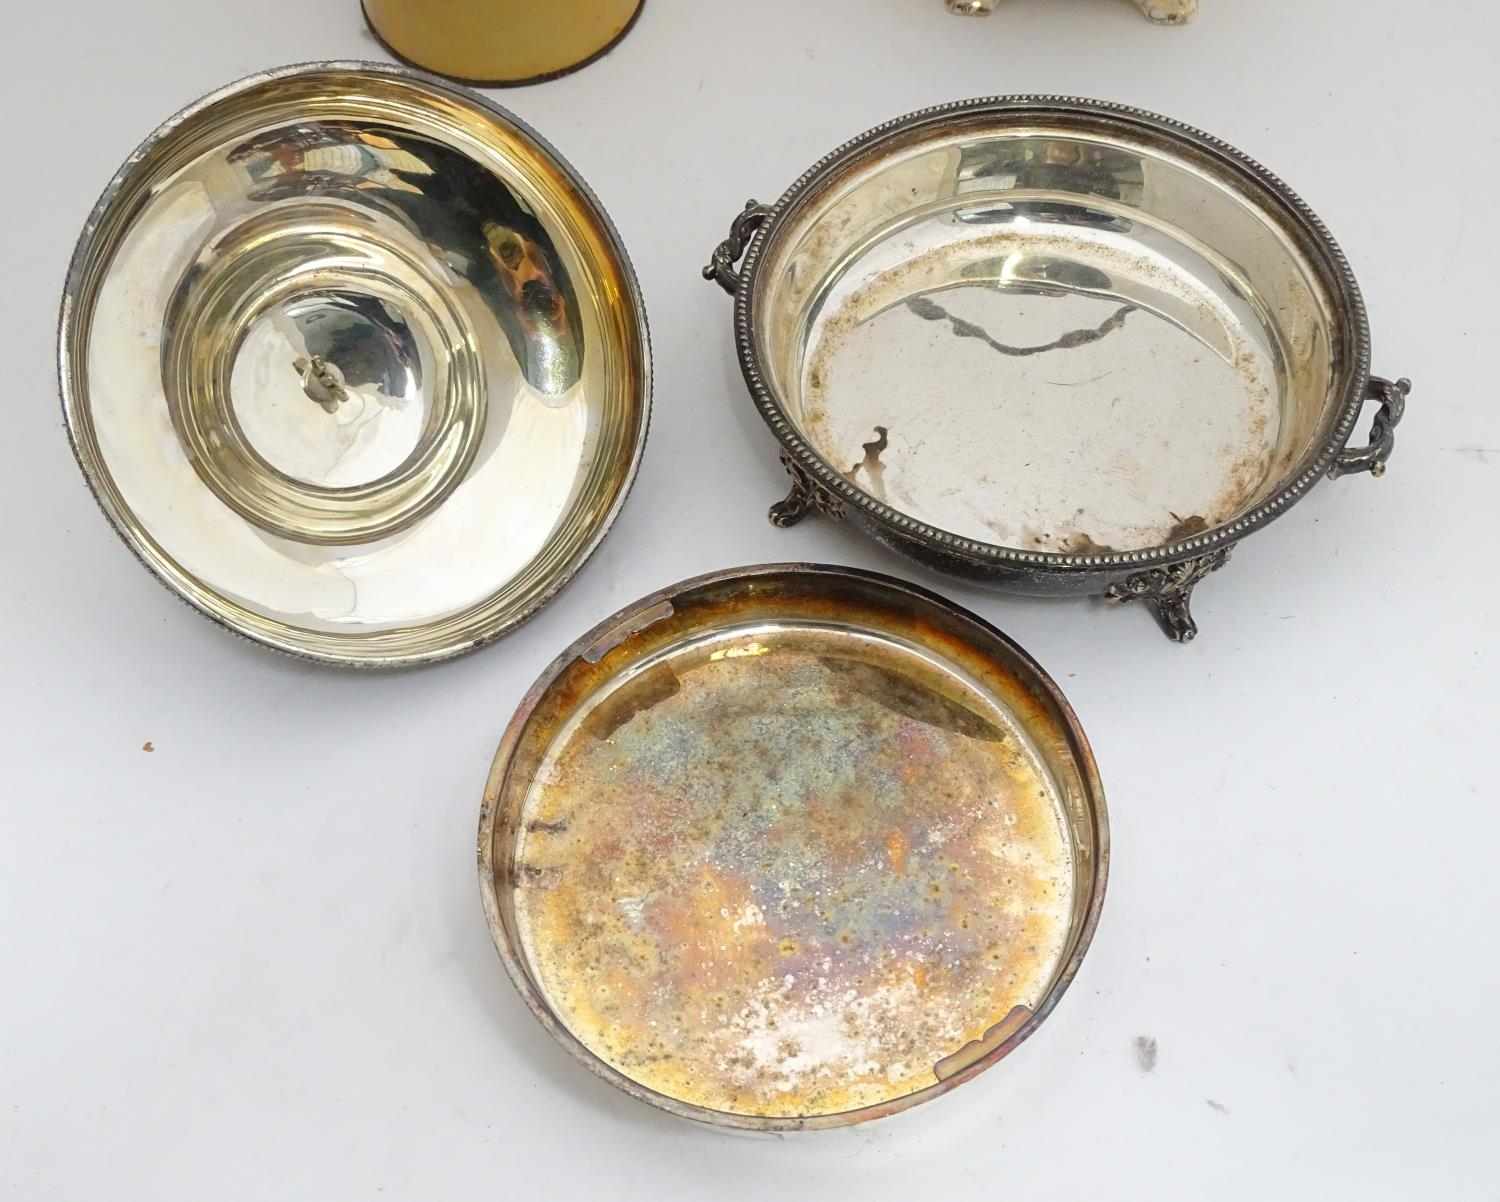 A quantity of silver plated items to include a biscuit barrel, toast rack, sauce boat, tongs, etc. - Image 17 of 30